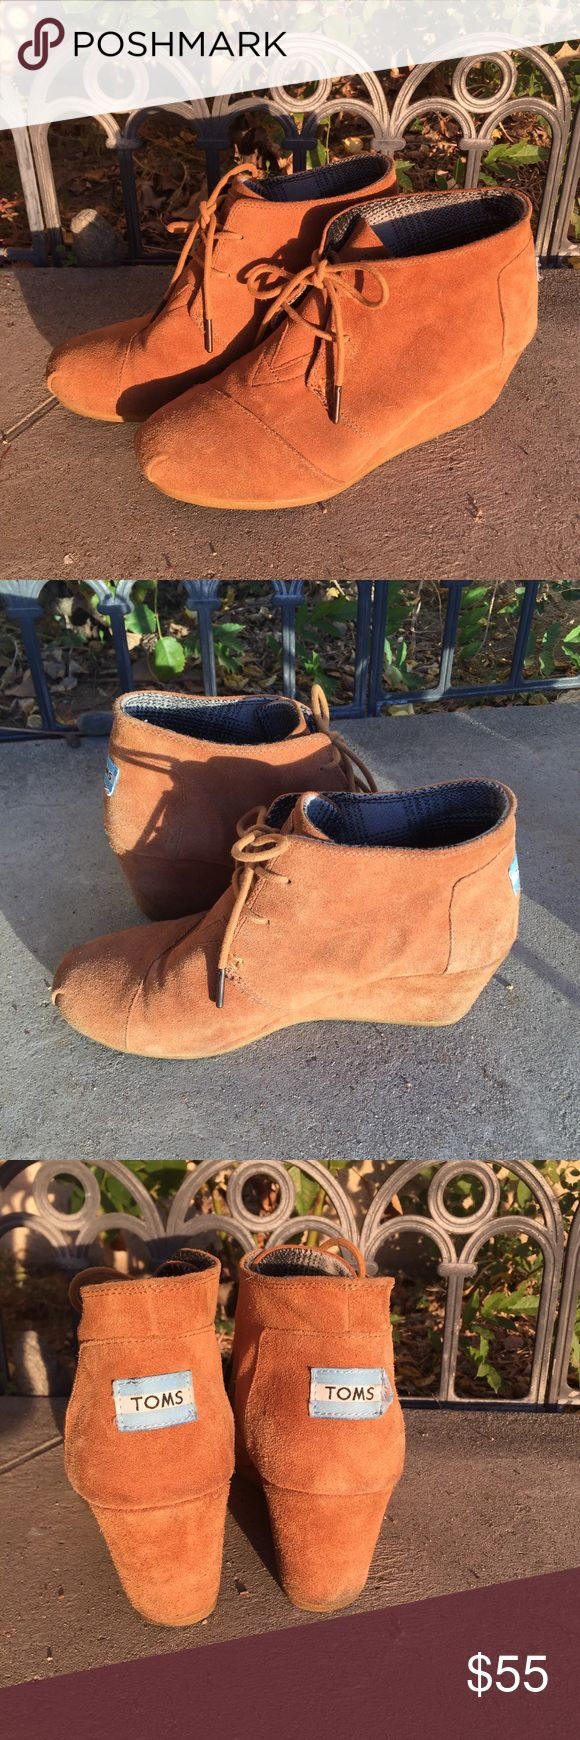 Toms wedge booties camel cognac brown I'm excellent condition, worn only couple times. Very minor visible wear Toms Shoes Ankle Boots & Booties